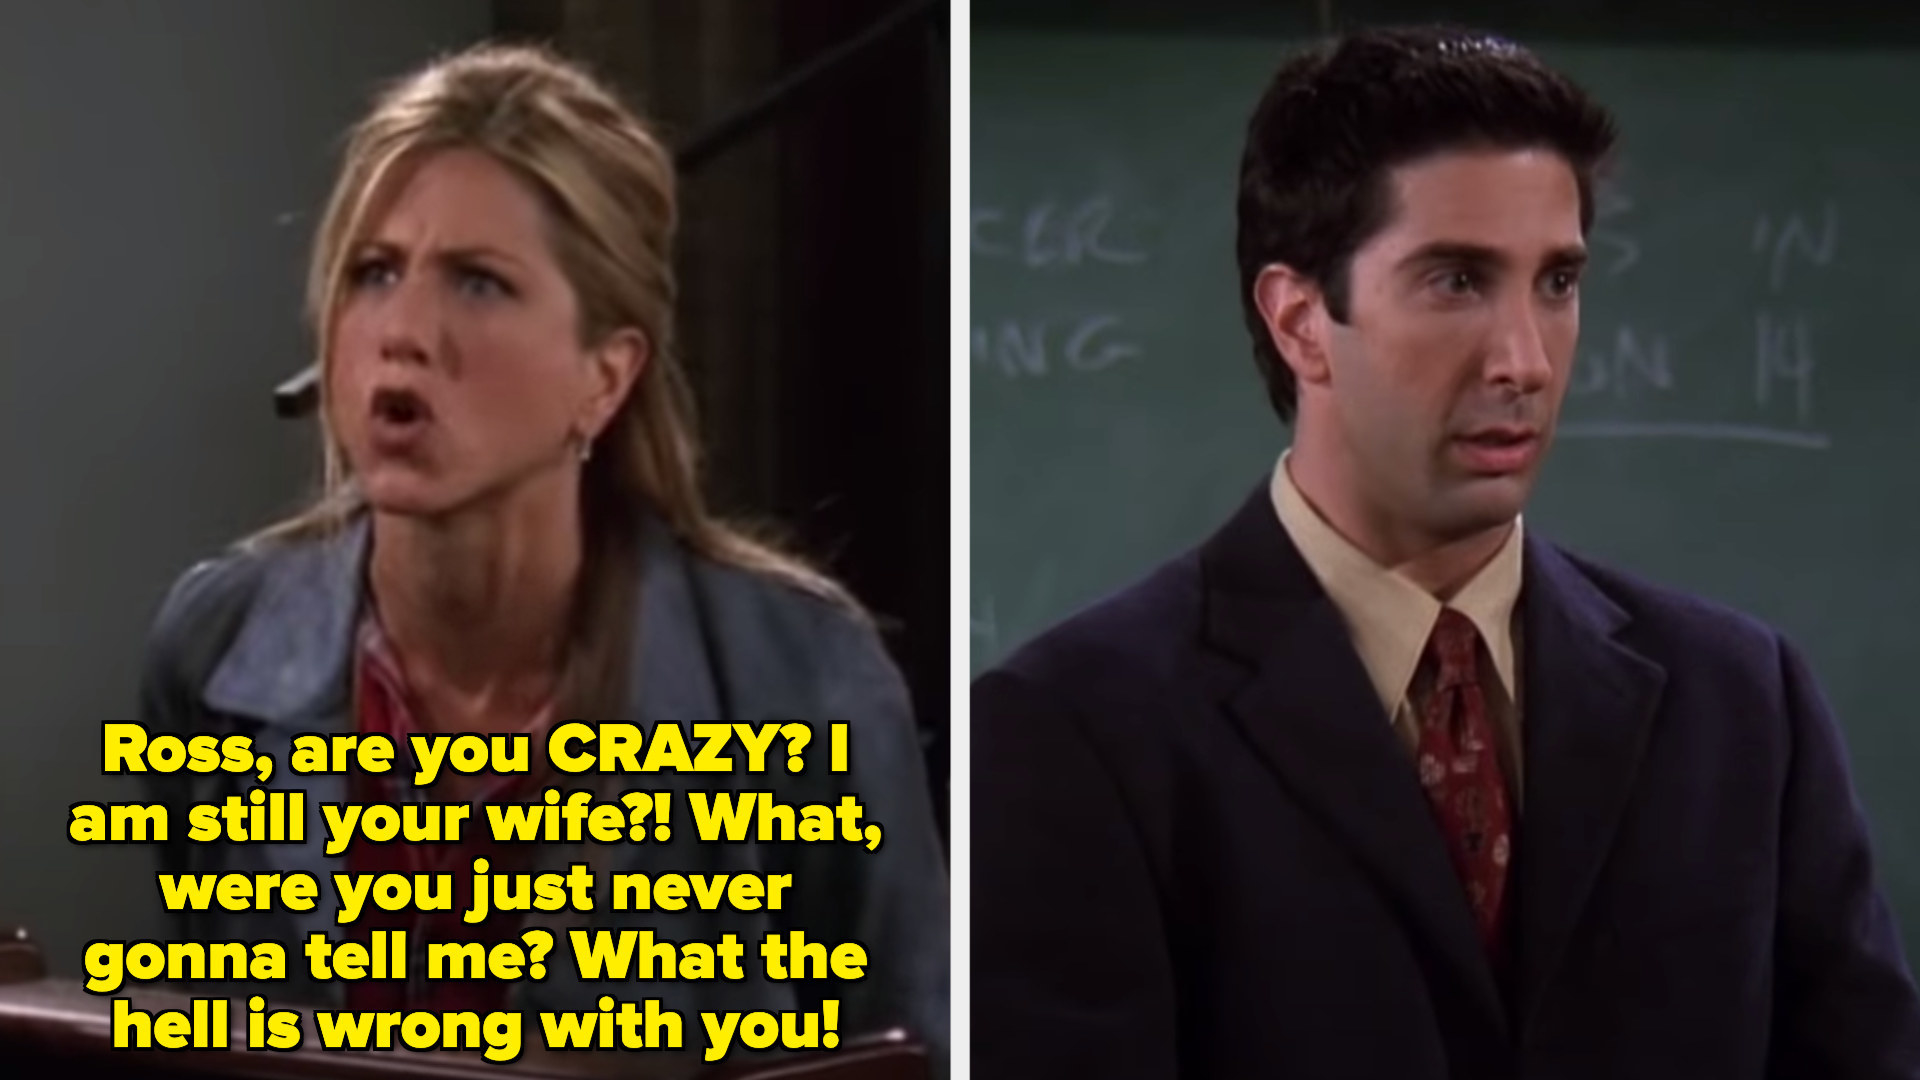 Rachel yelling at Ross in front of his students while Ross reacts by freezing in fear